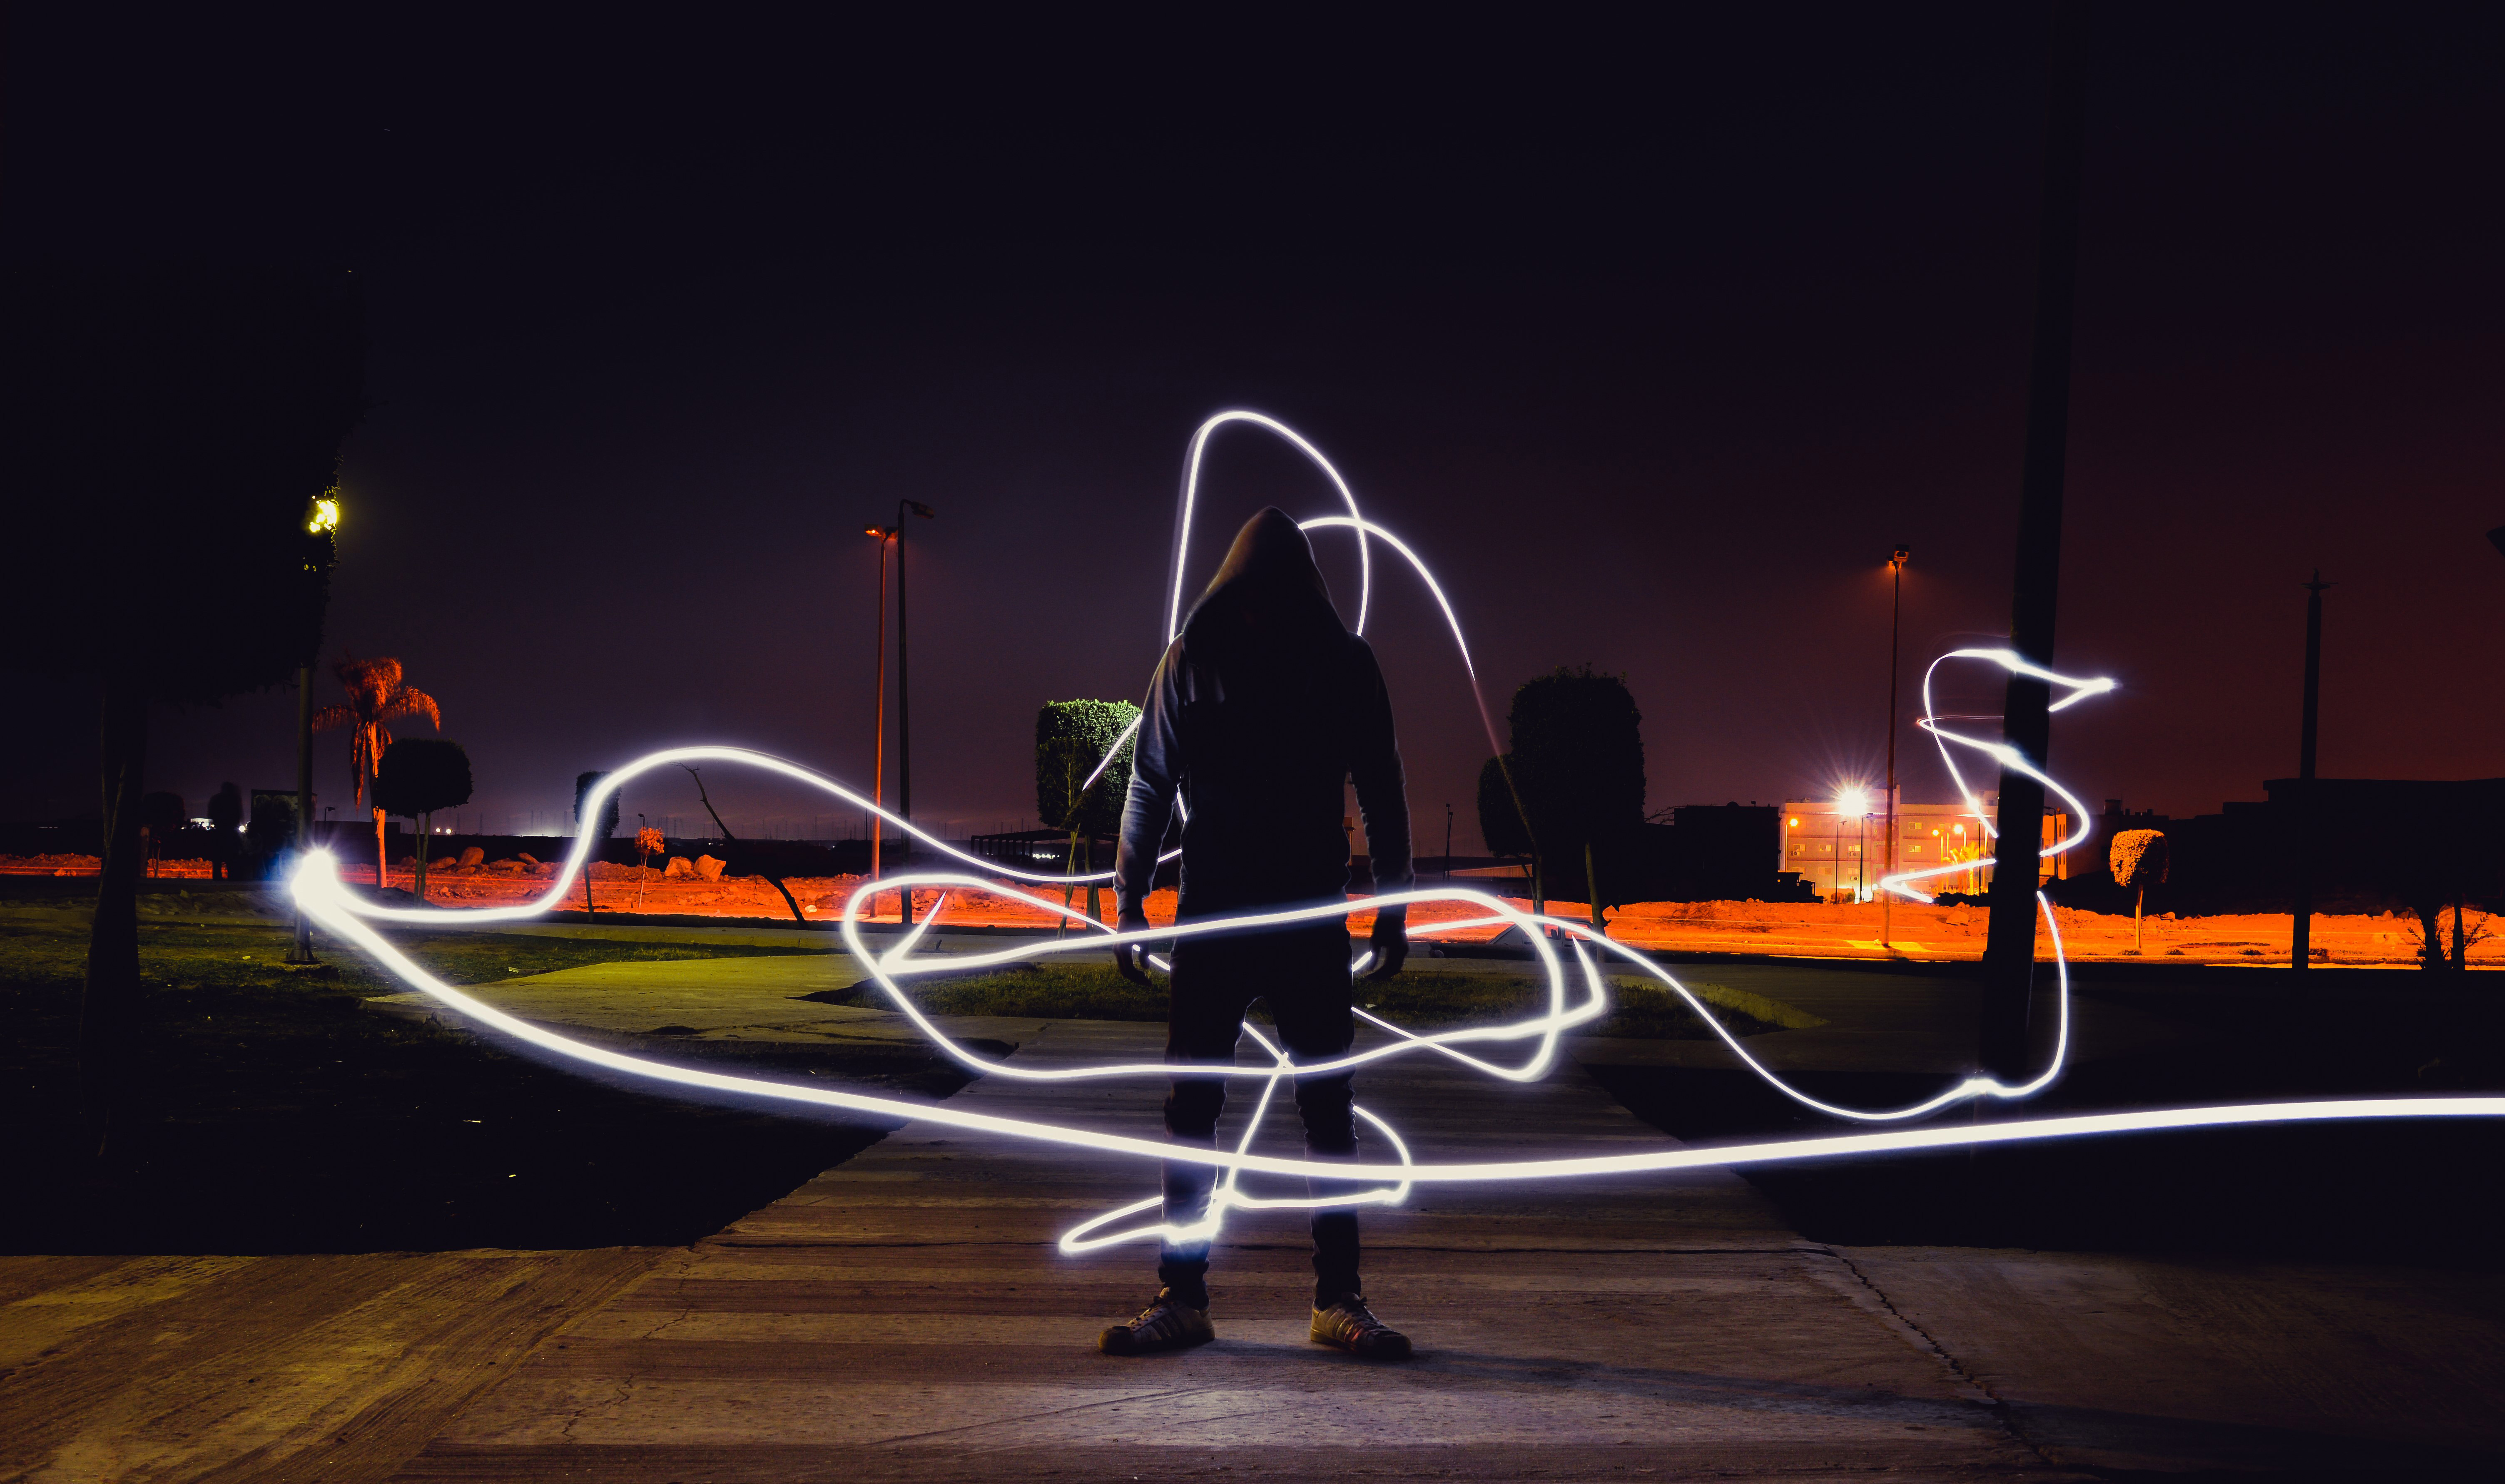 Hoodie Boy Light Timelapse Hd Photography 4k Wallpapers